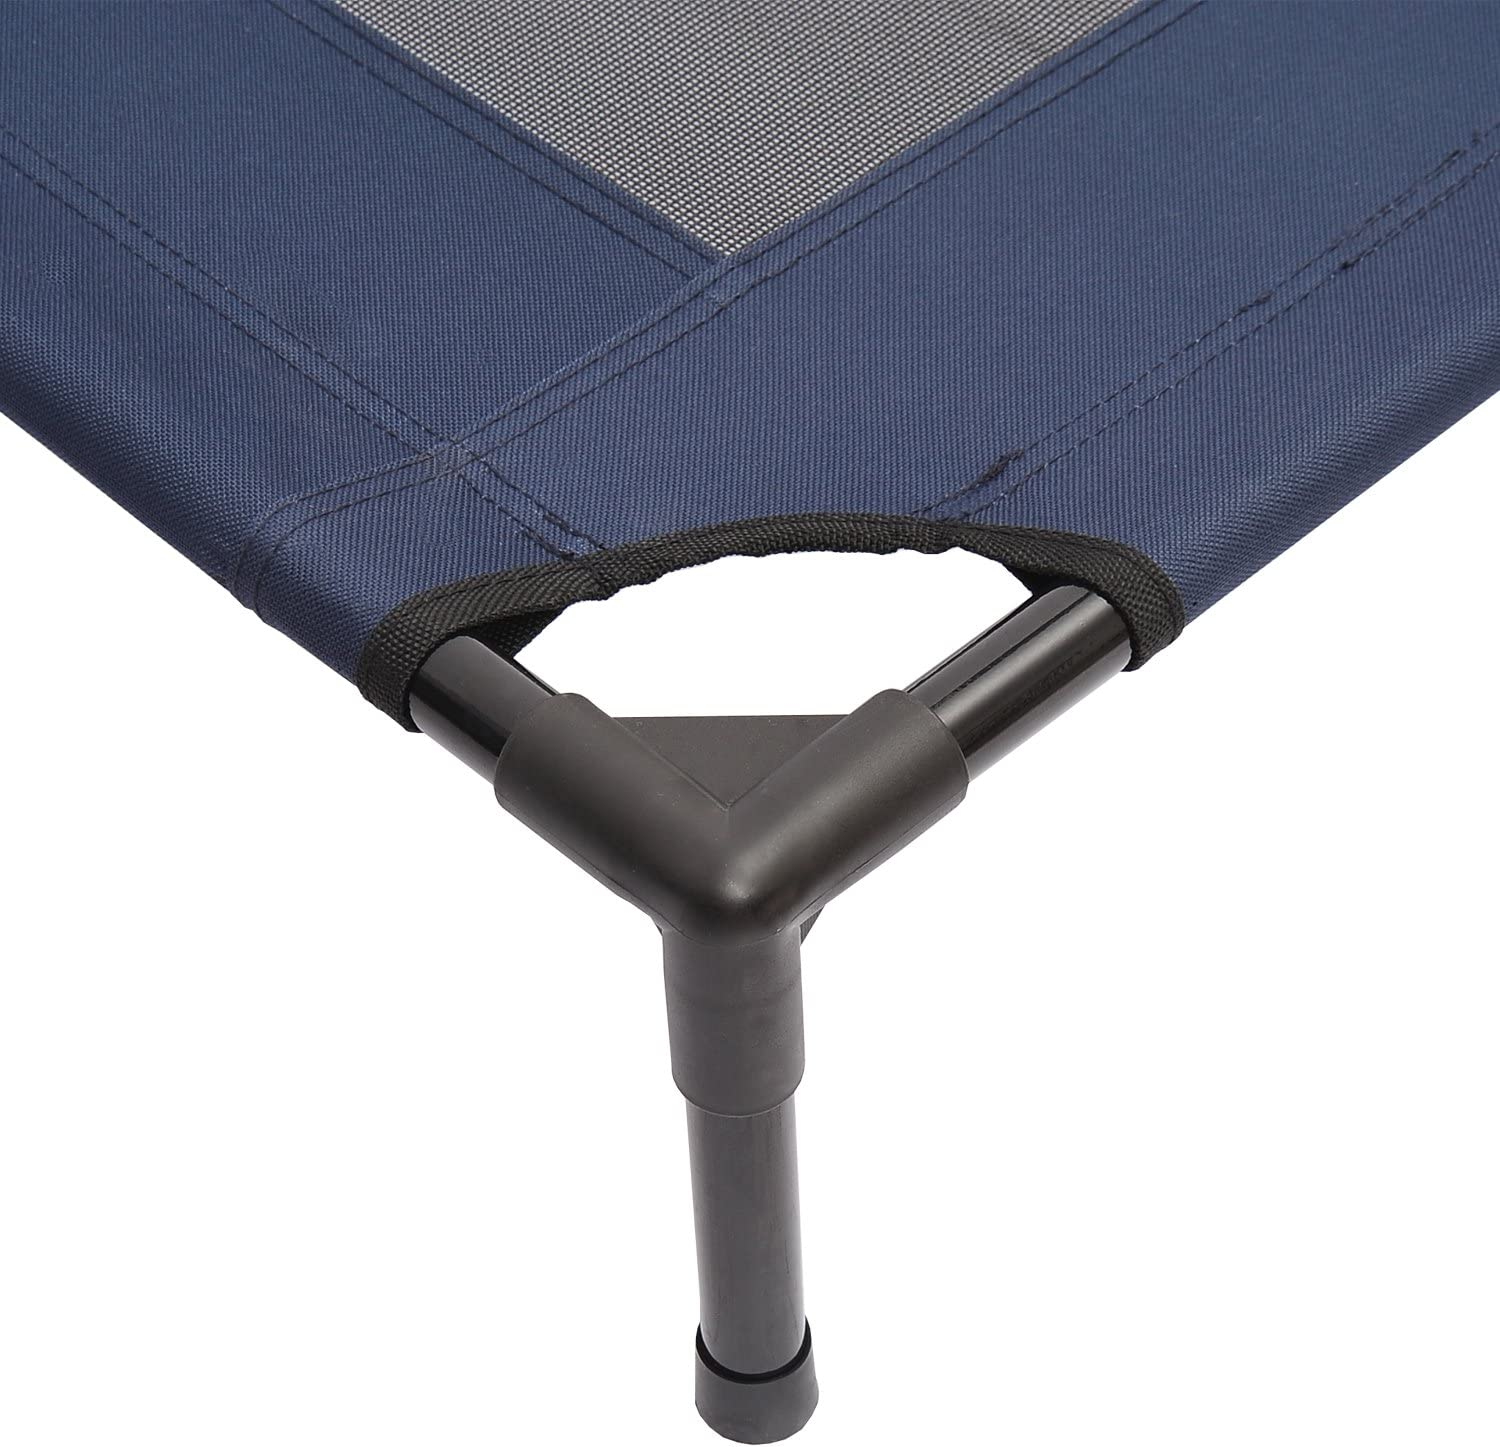 Blue PawHut Dog Cat Puppy Pet Elevated Raised Cot Bed Portable Camping Basket Large